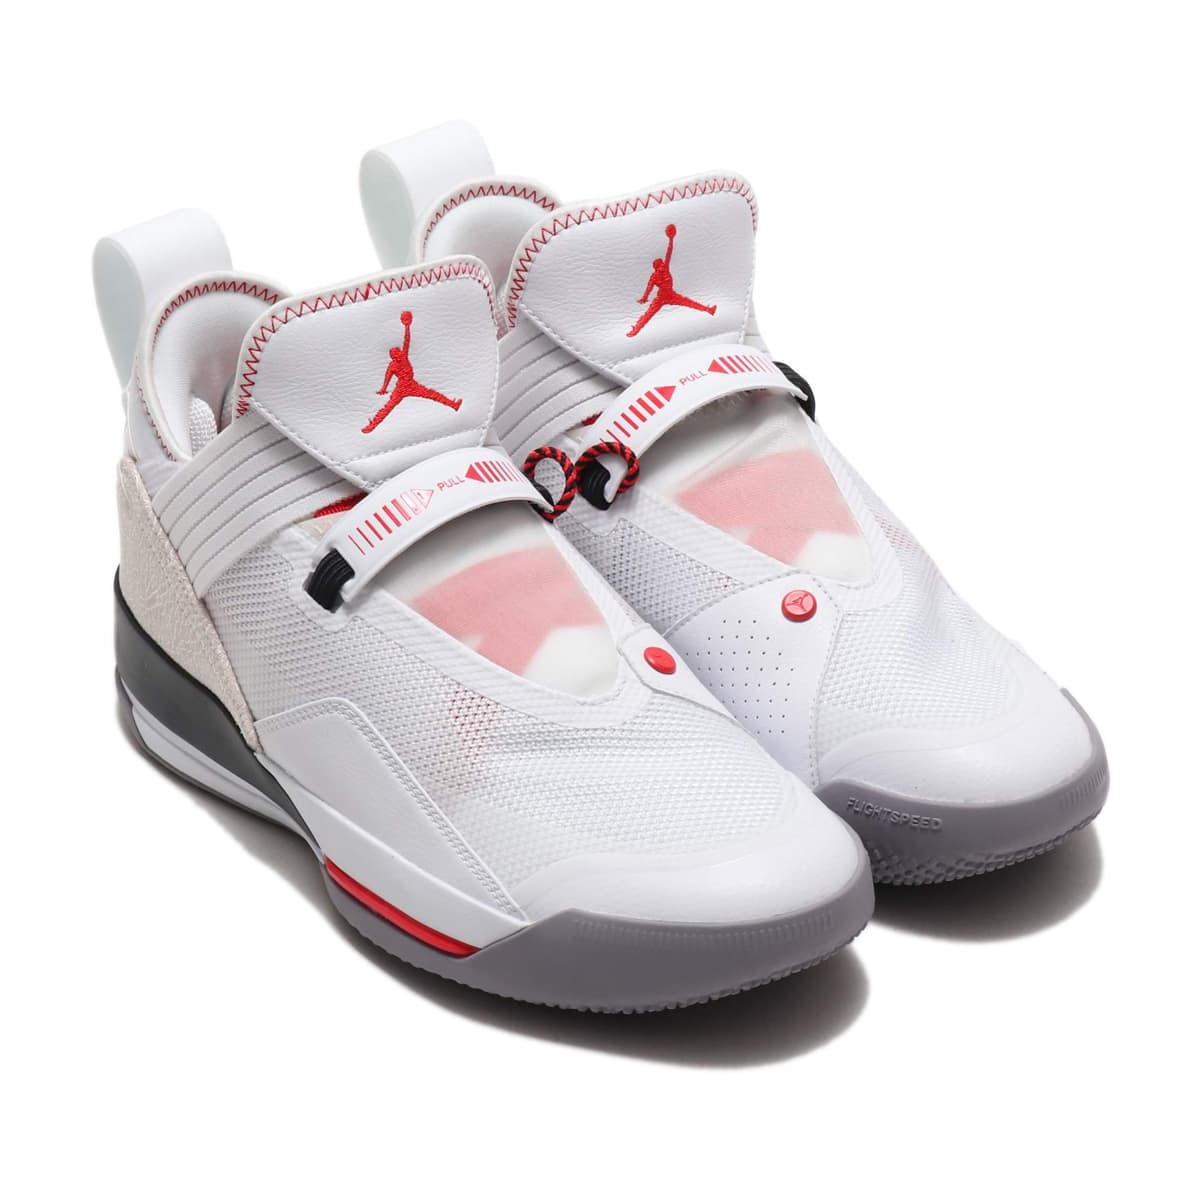 JORDAN BRAND AIR JORDAN XXXIII SE PF WHITE/MTLC GOLD-GYM RED-BLACK 19SU-I_photo_large